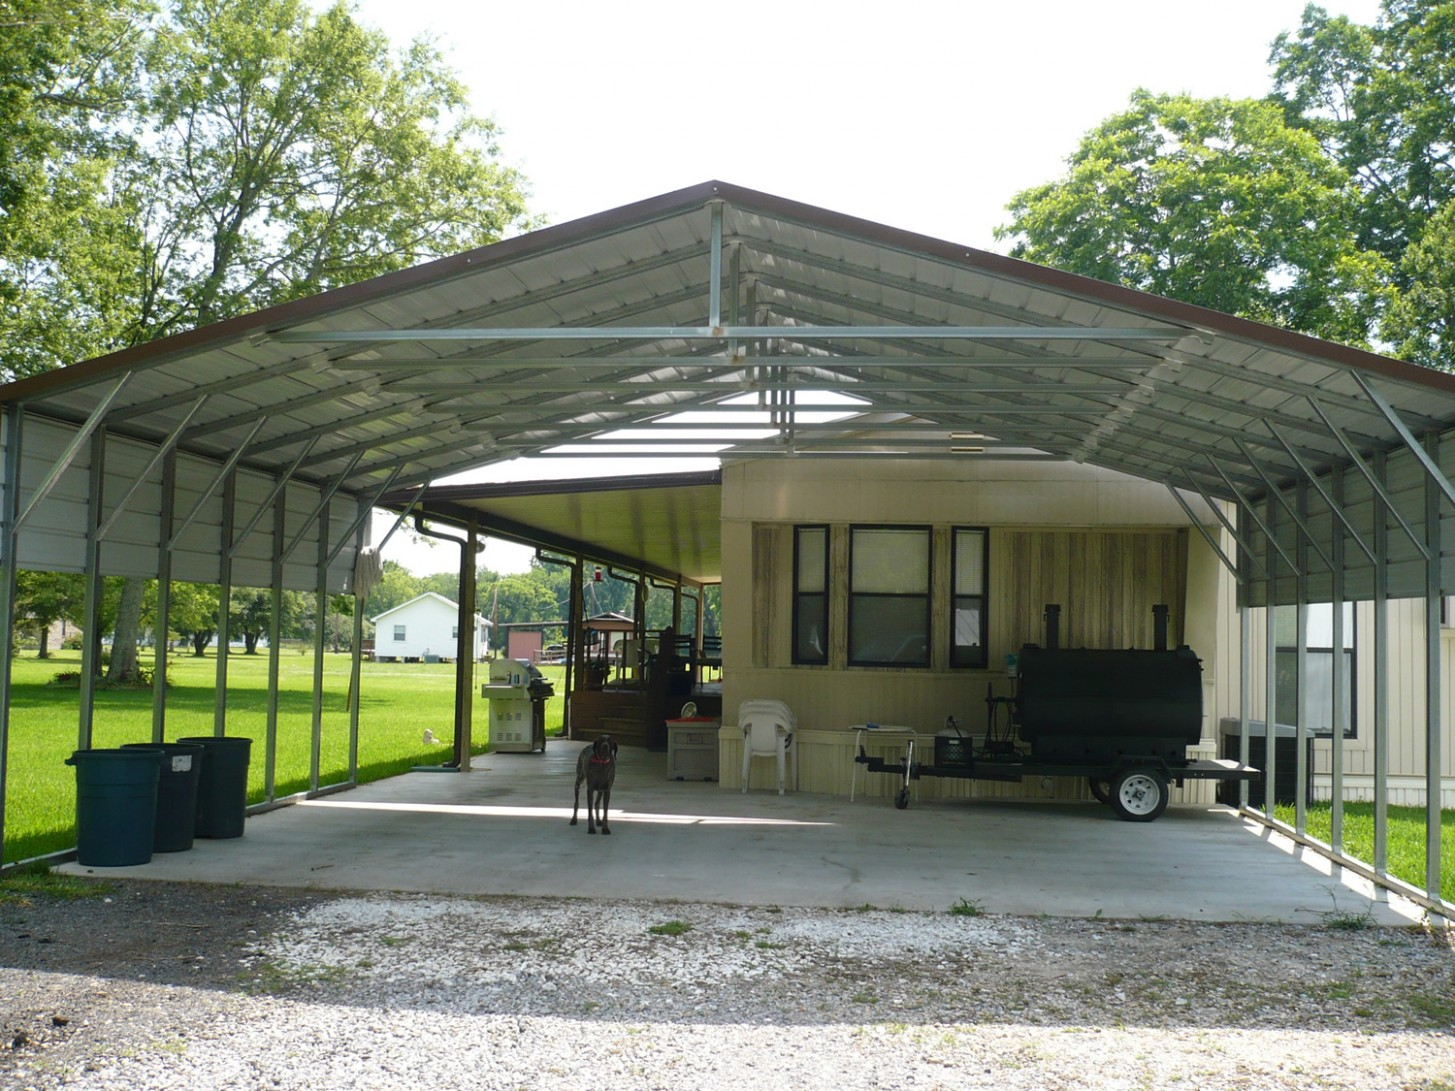 15 Things To Expect When Attending Steel Shelters Carports | steel shelters carports